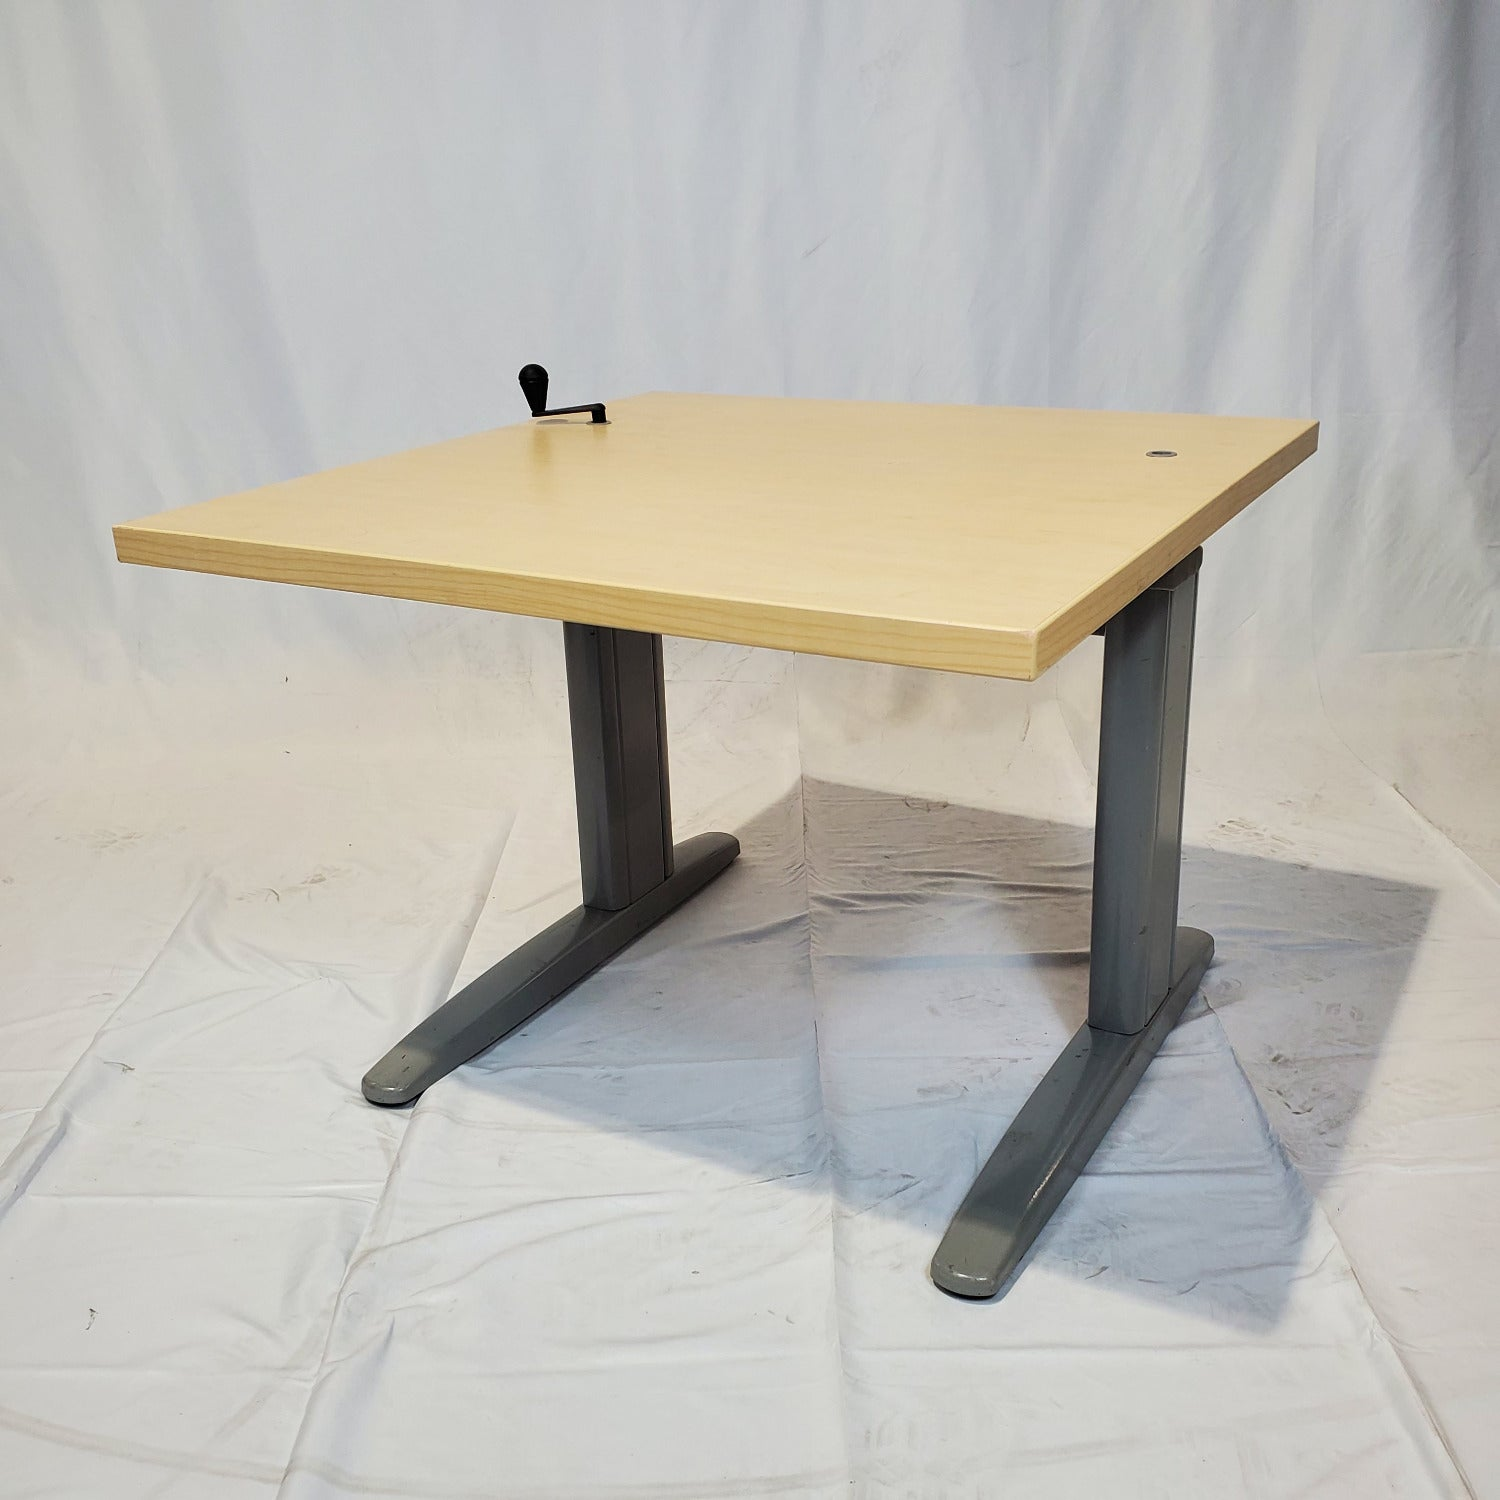 "Pre-Owned - Used Manual Height Adjustable Desk 30X29"" - Duckys Office Furniture"